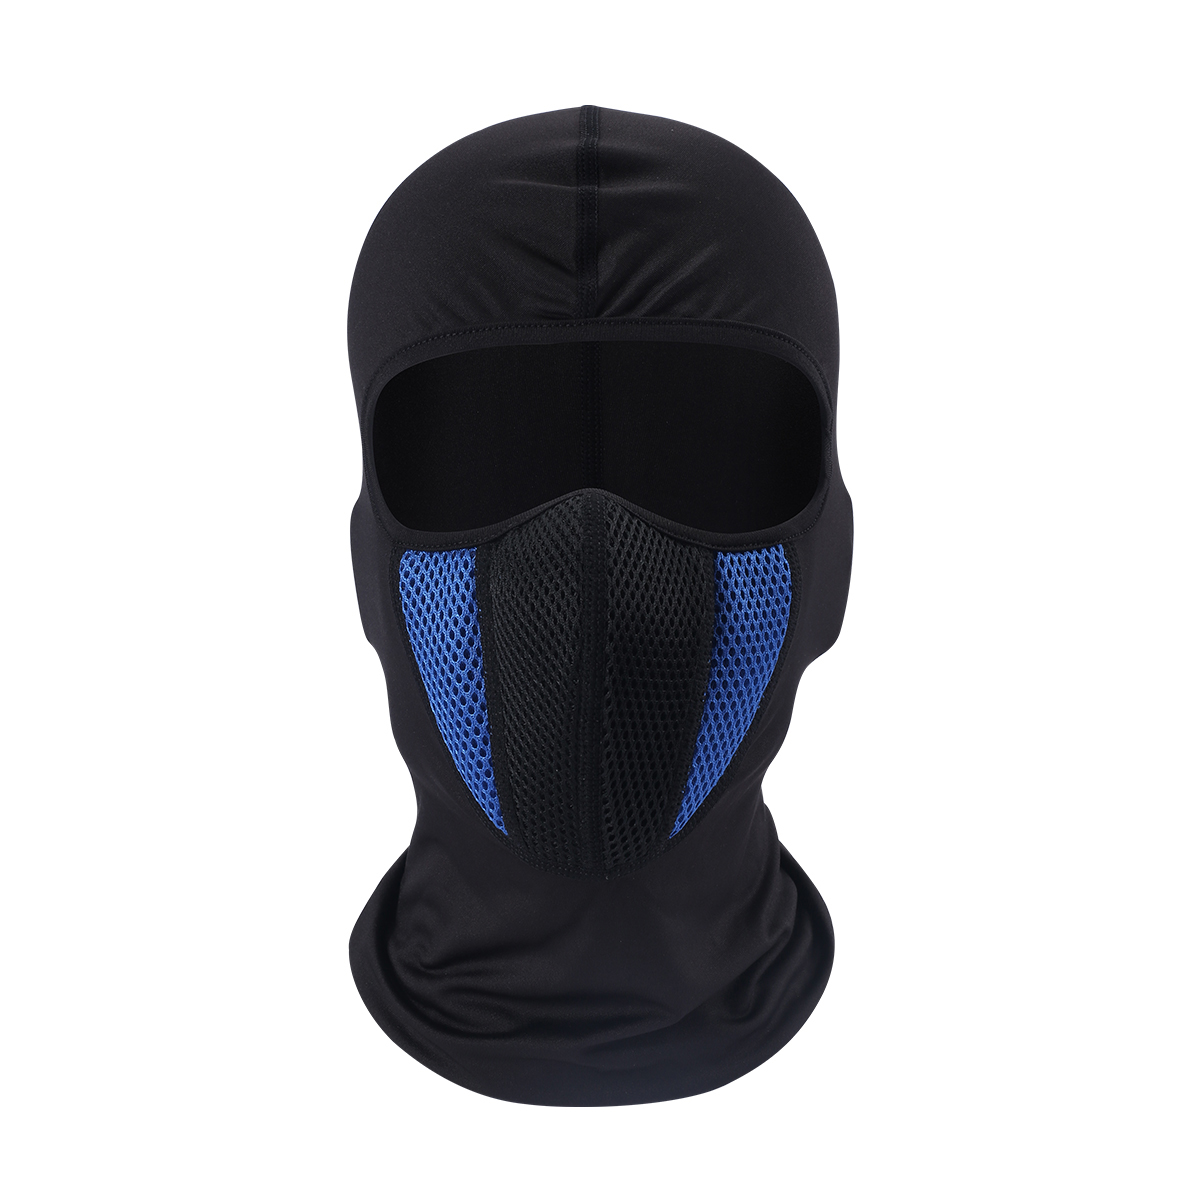 Balaclava Face Mask Motorcycle Tactical Airsoft Cycling Bike Ski Army Helmet Protection Full Face Riding Brand Mask